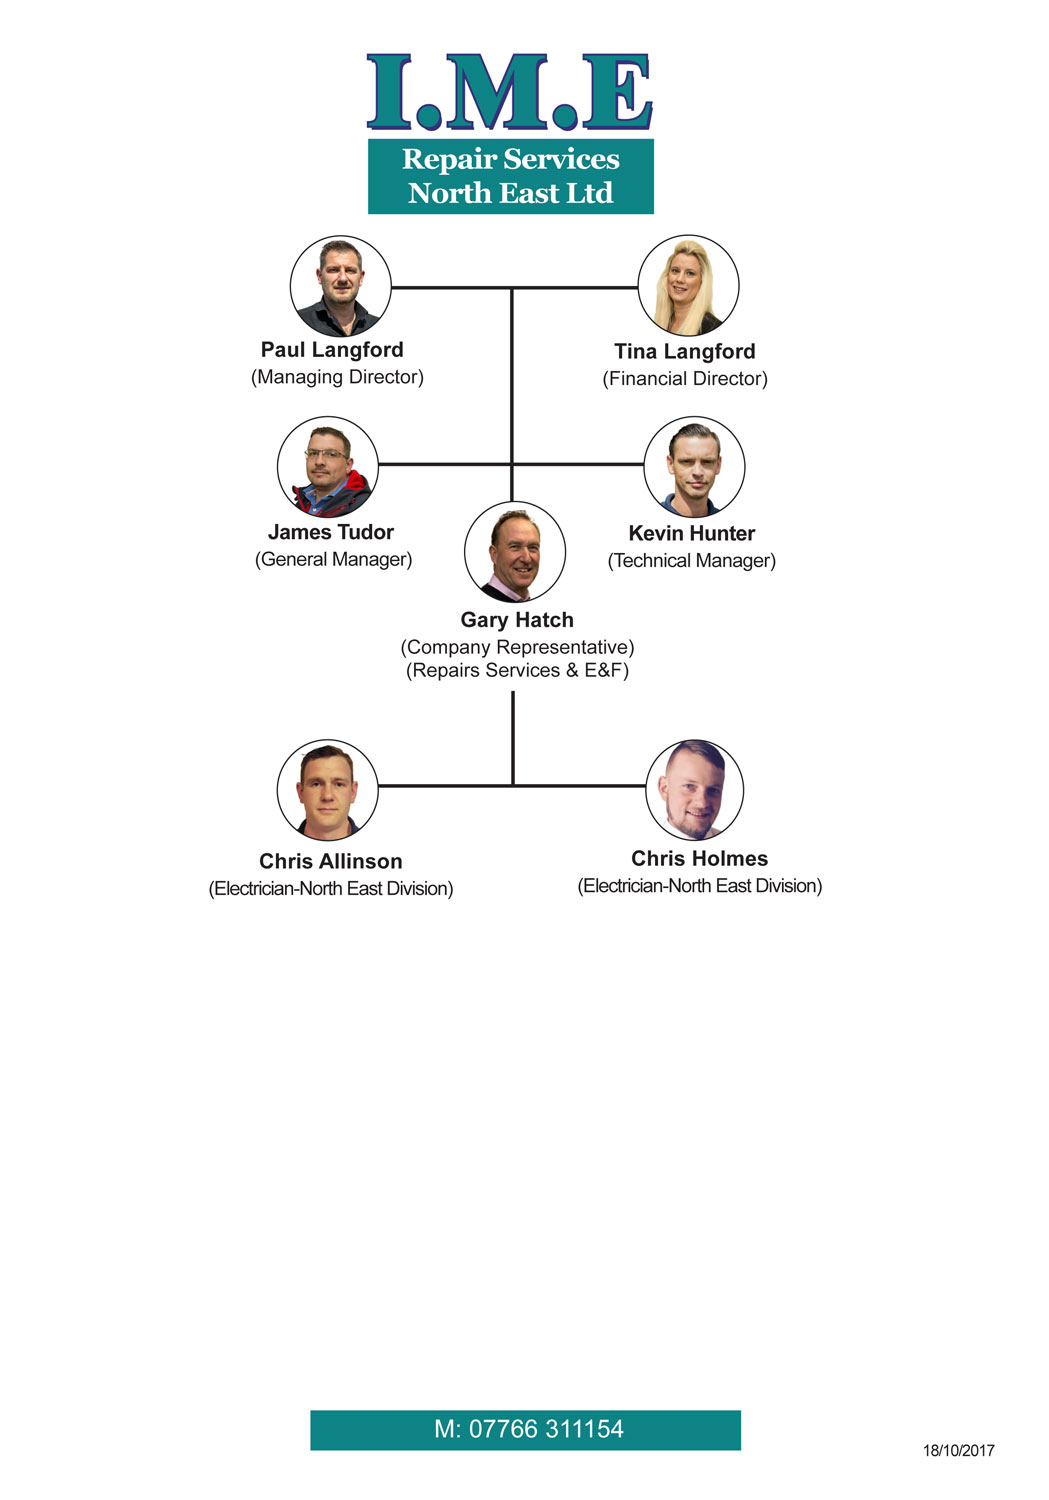 IME Repair Services North East staff structure